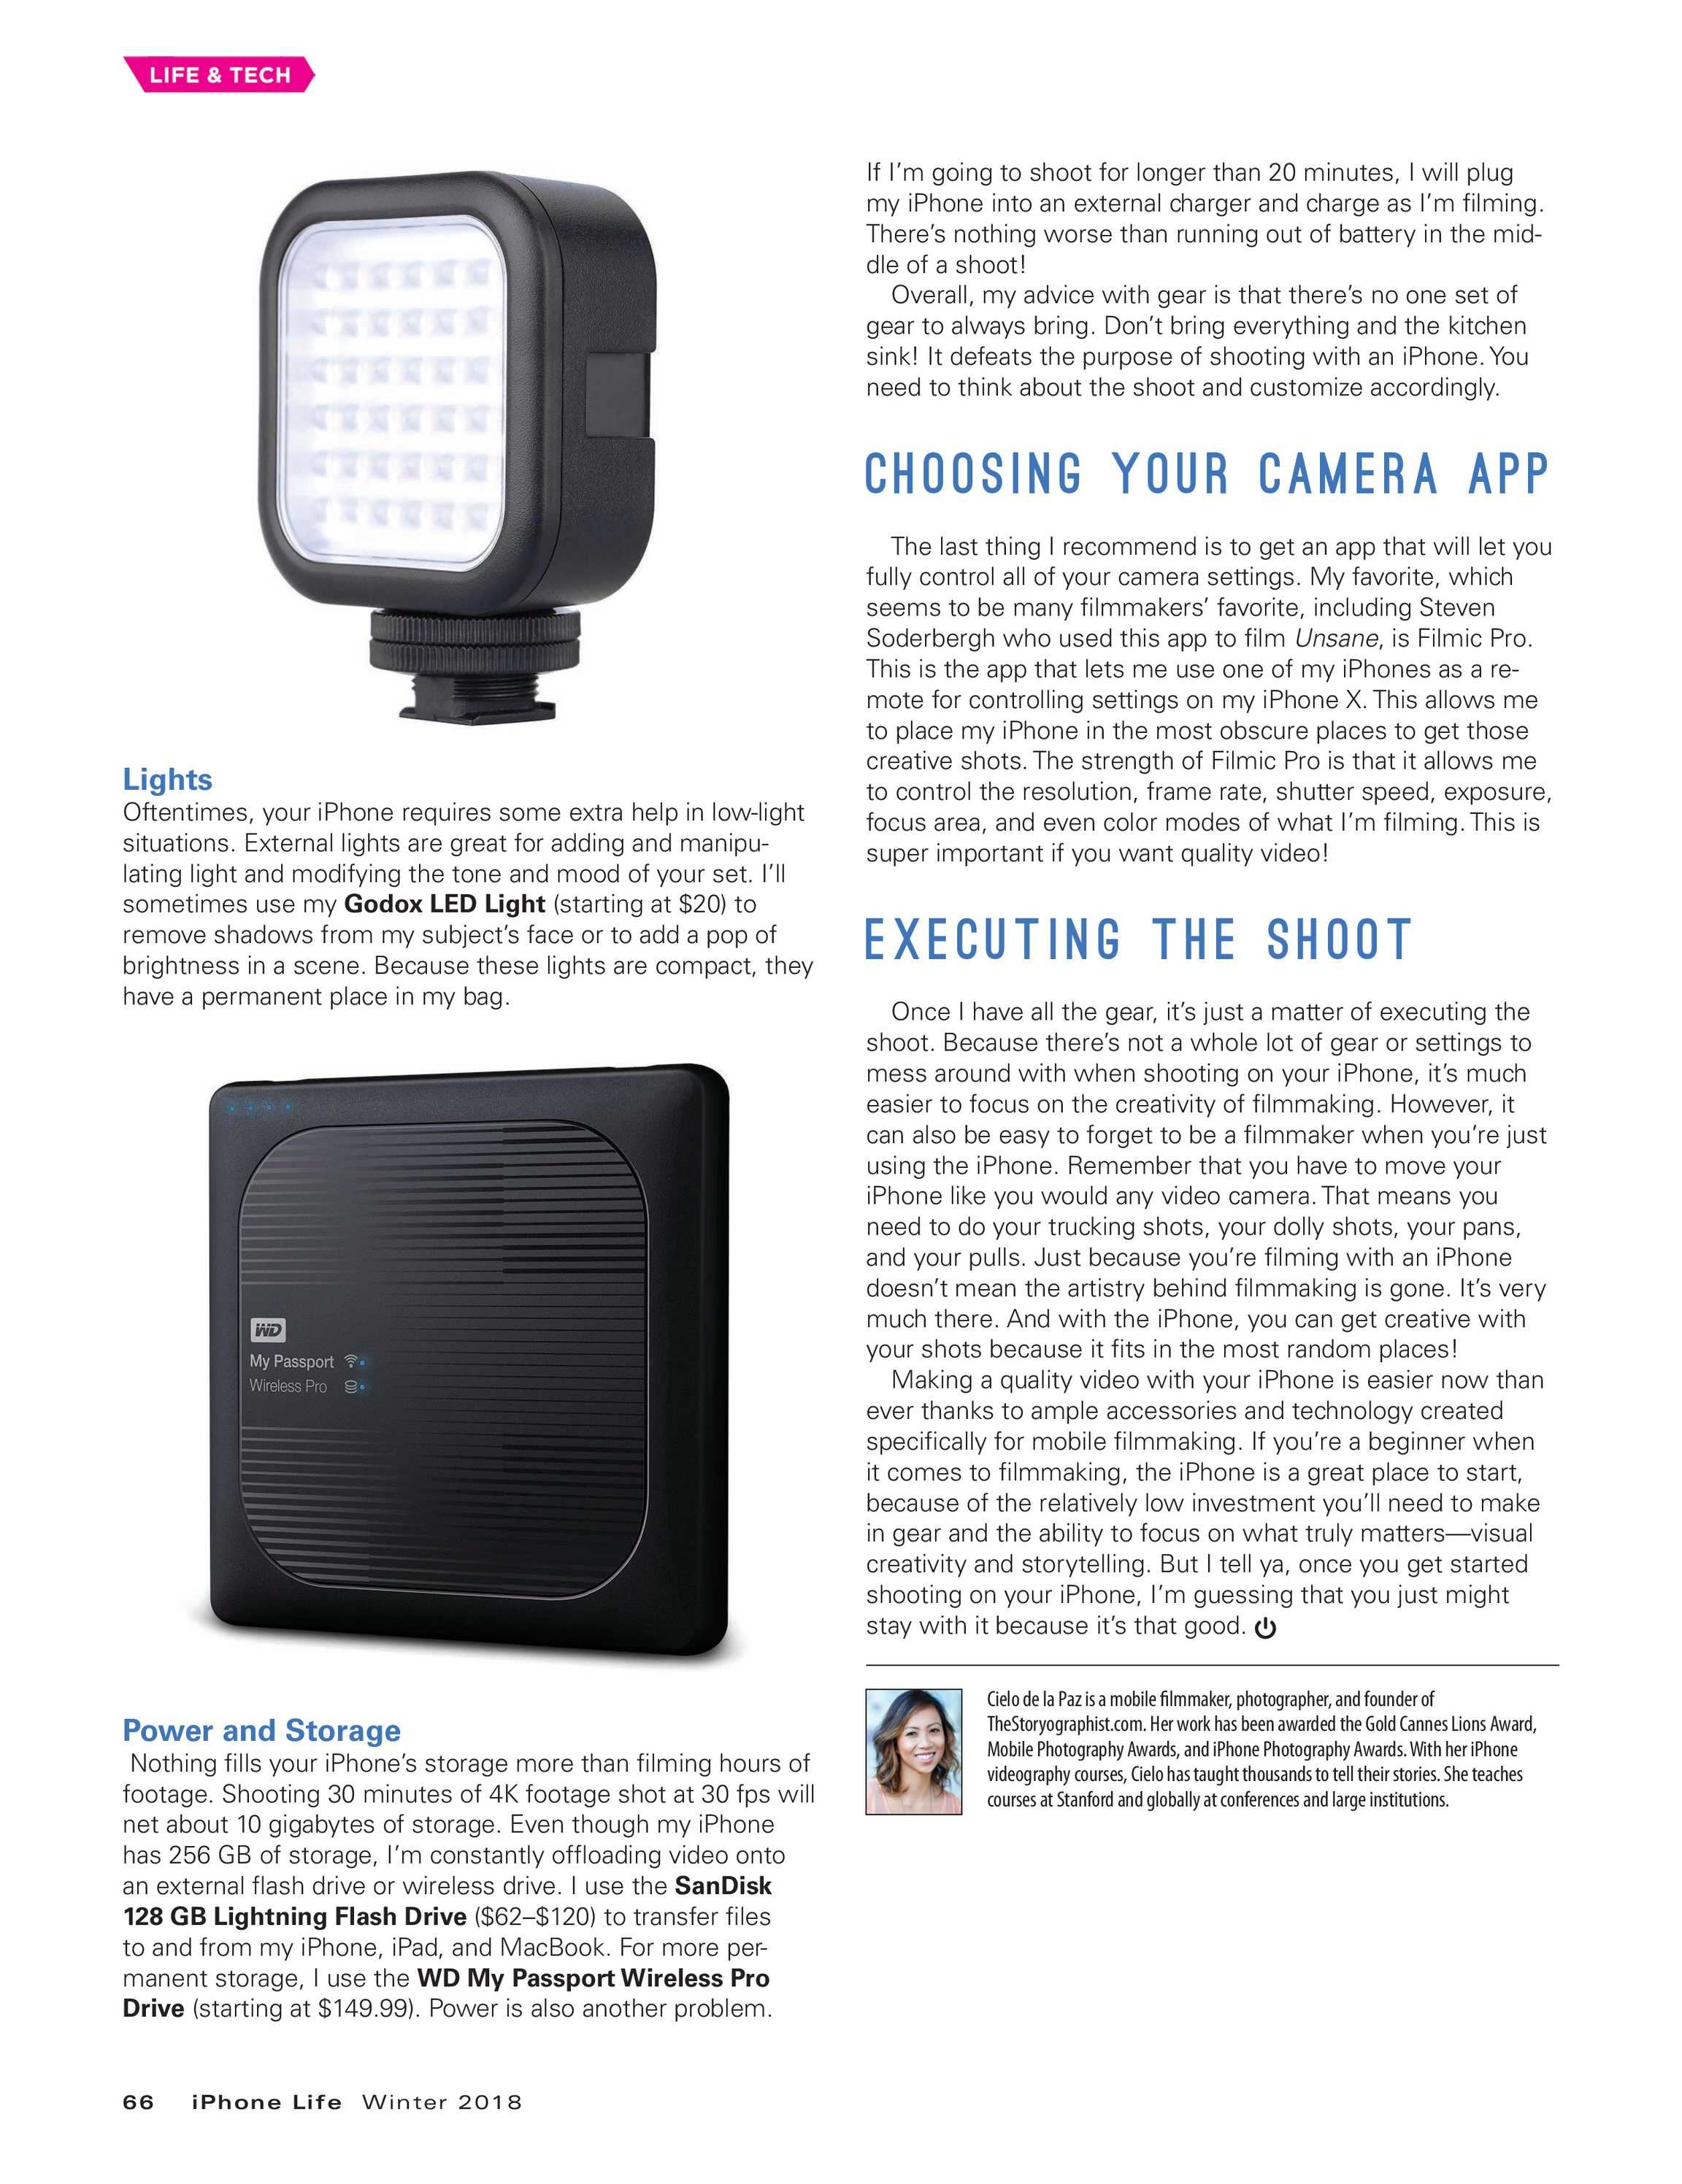 iPhone Life - Winter 2018 - page 66